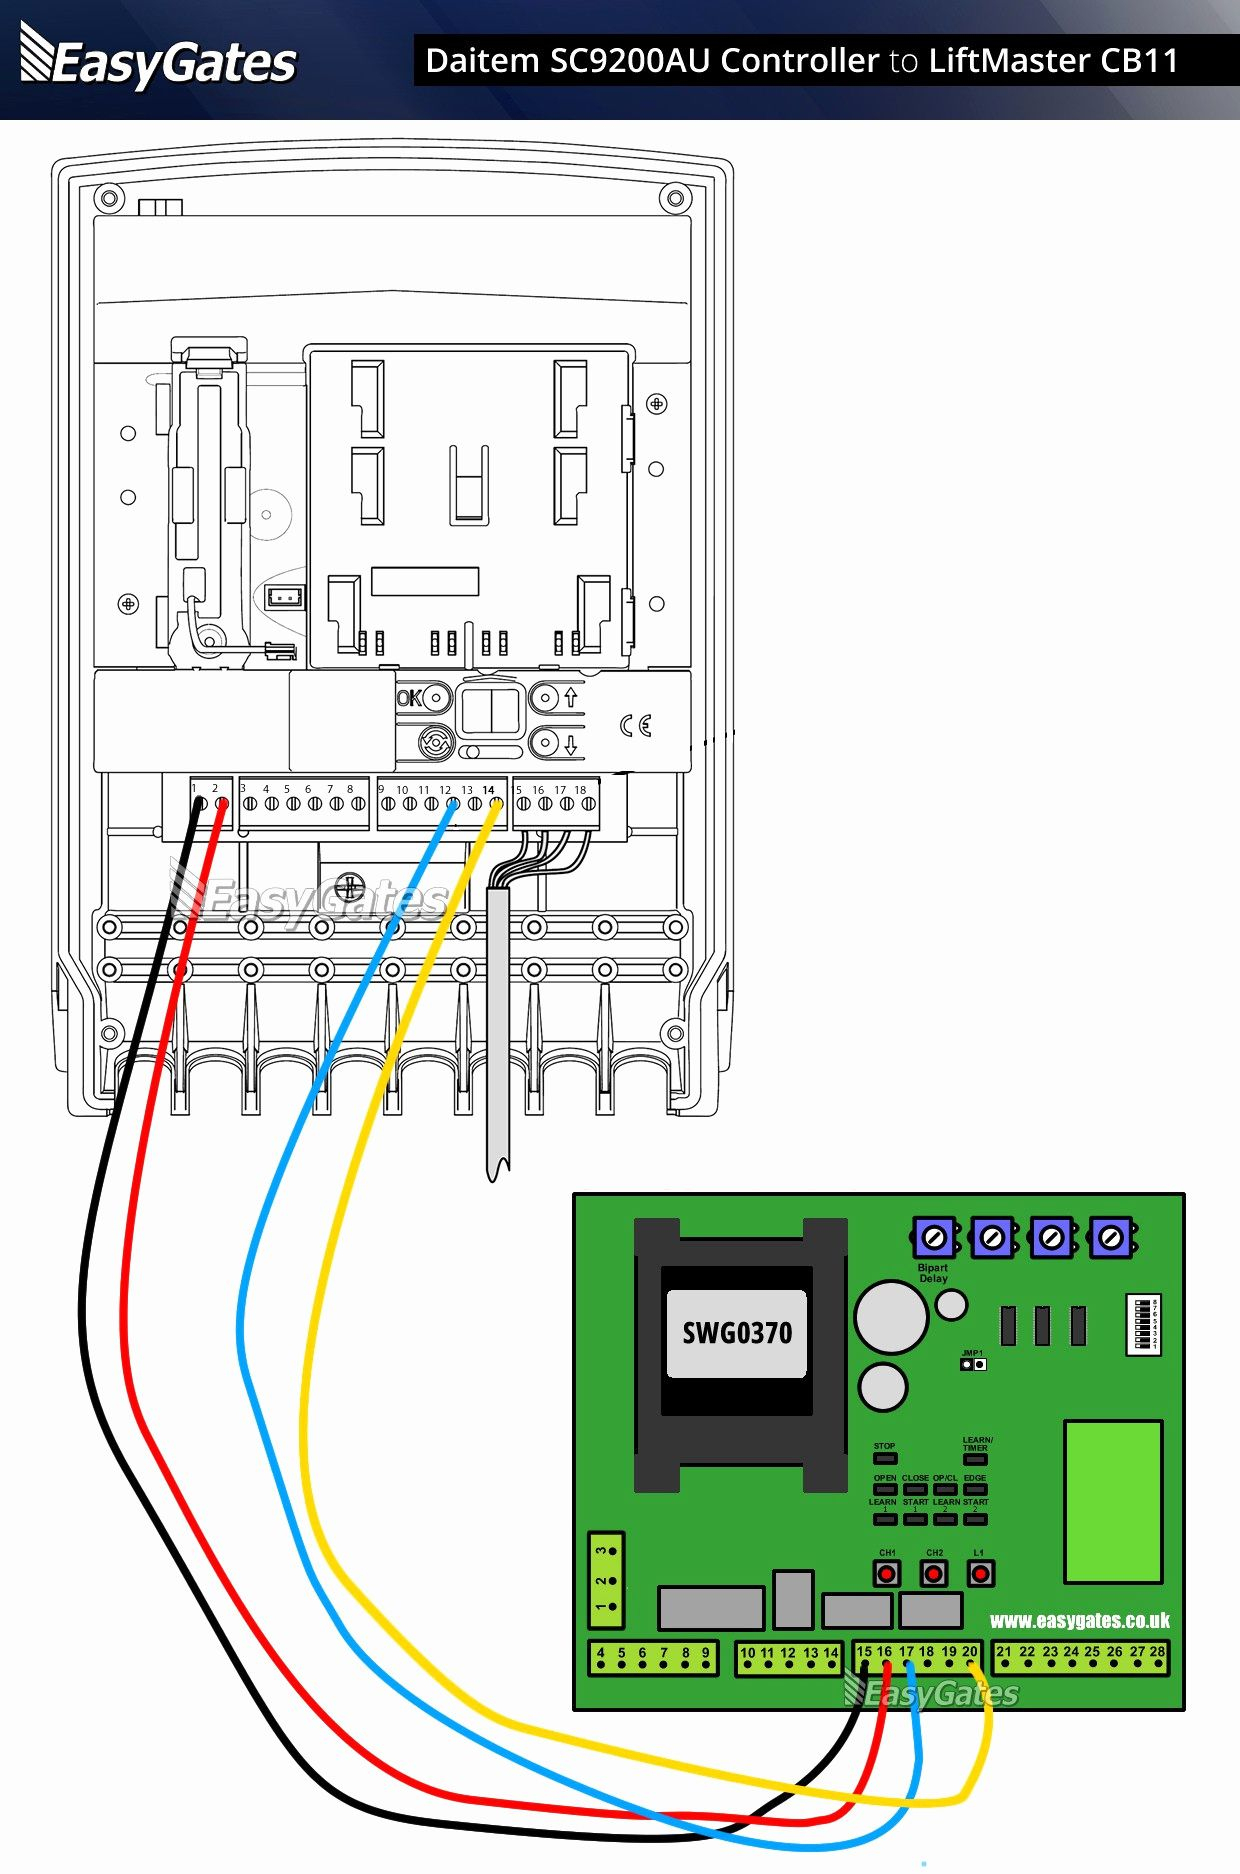 Chamberlain Whisper Drive Garage Door Opener Wiring Diagram | Manual - Chamberlain Garage Door Opener Wiring Diagram